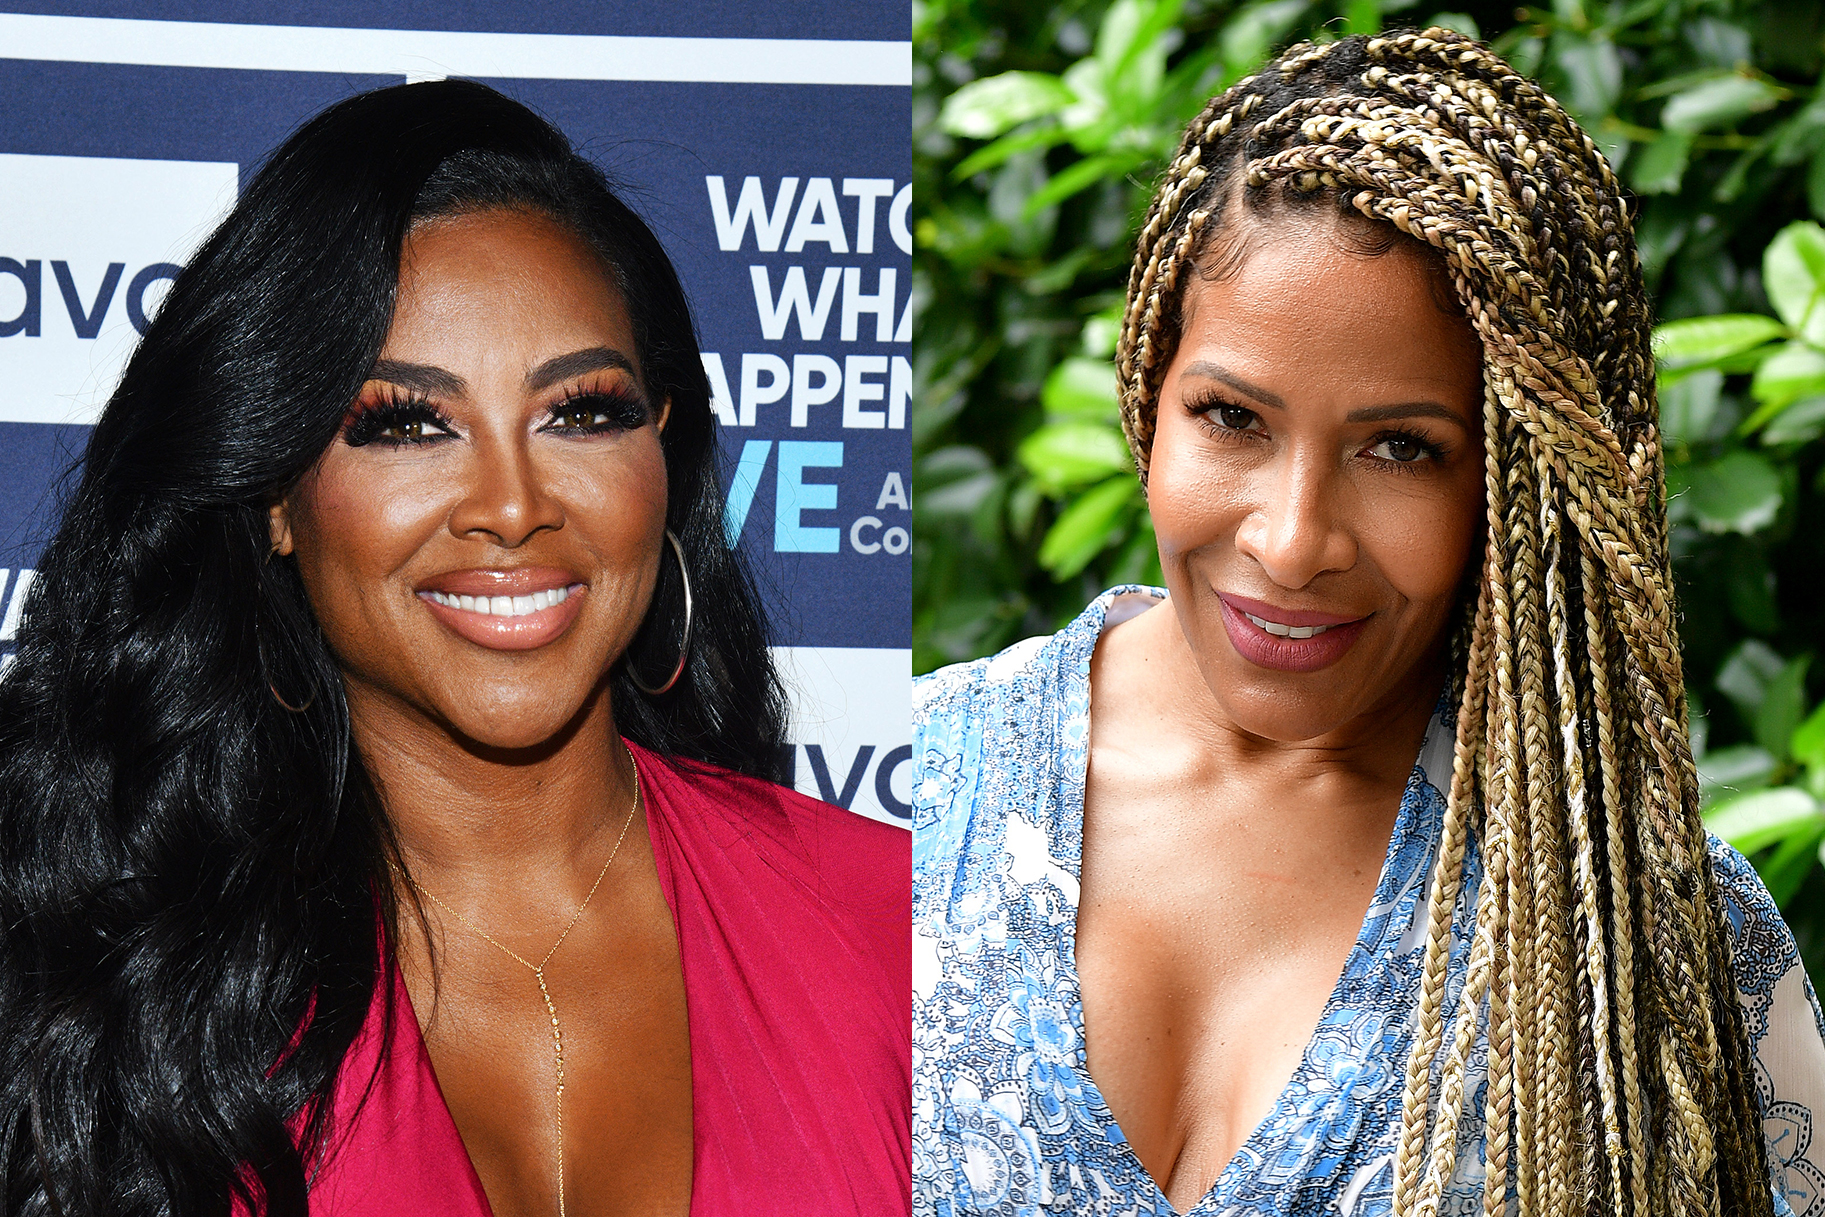 Kenya Moore Sheree Whitfield Chateau Sheree